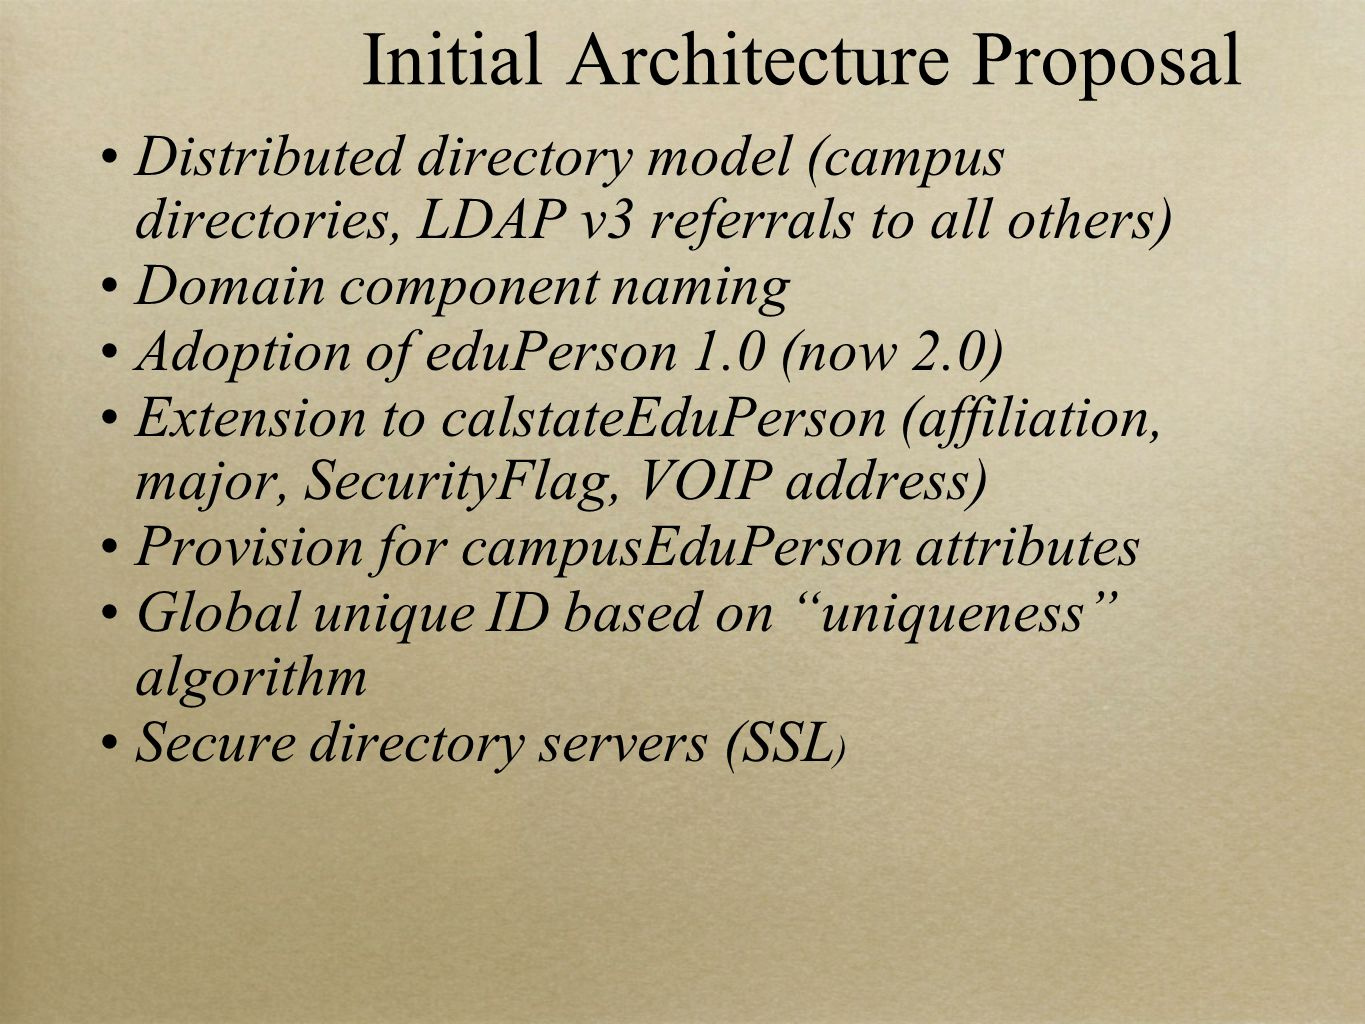 Initial Architecture Proposal Distributed directory model (campus directories, LDAP v3 referrals to all others) Domain component naming Adoption of eduPerson 1.0 (now 2.0) Extension to calstateEduPerson (affiliation, major, SecurityFlag, VOIP address) Provision for campusEduPerson attributes Global unique ID based on uniqueness algorithm Secure directory servers (SSL )